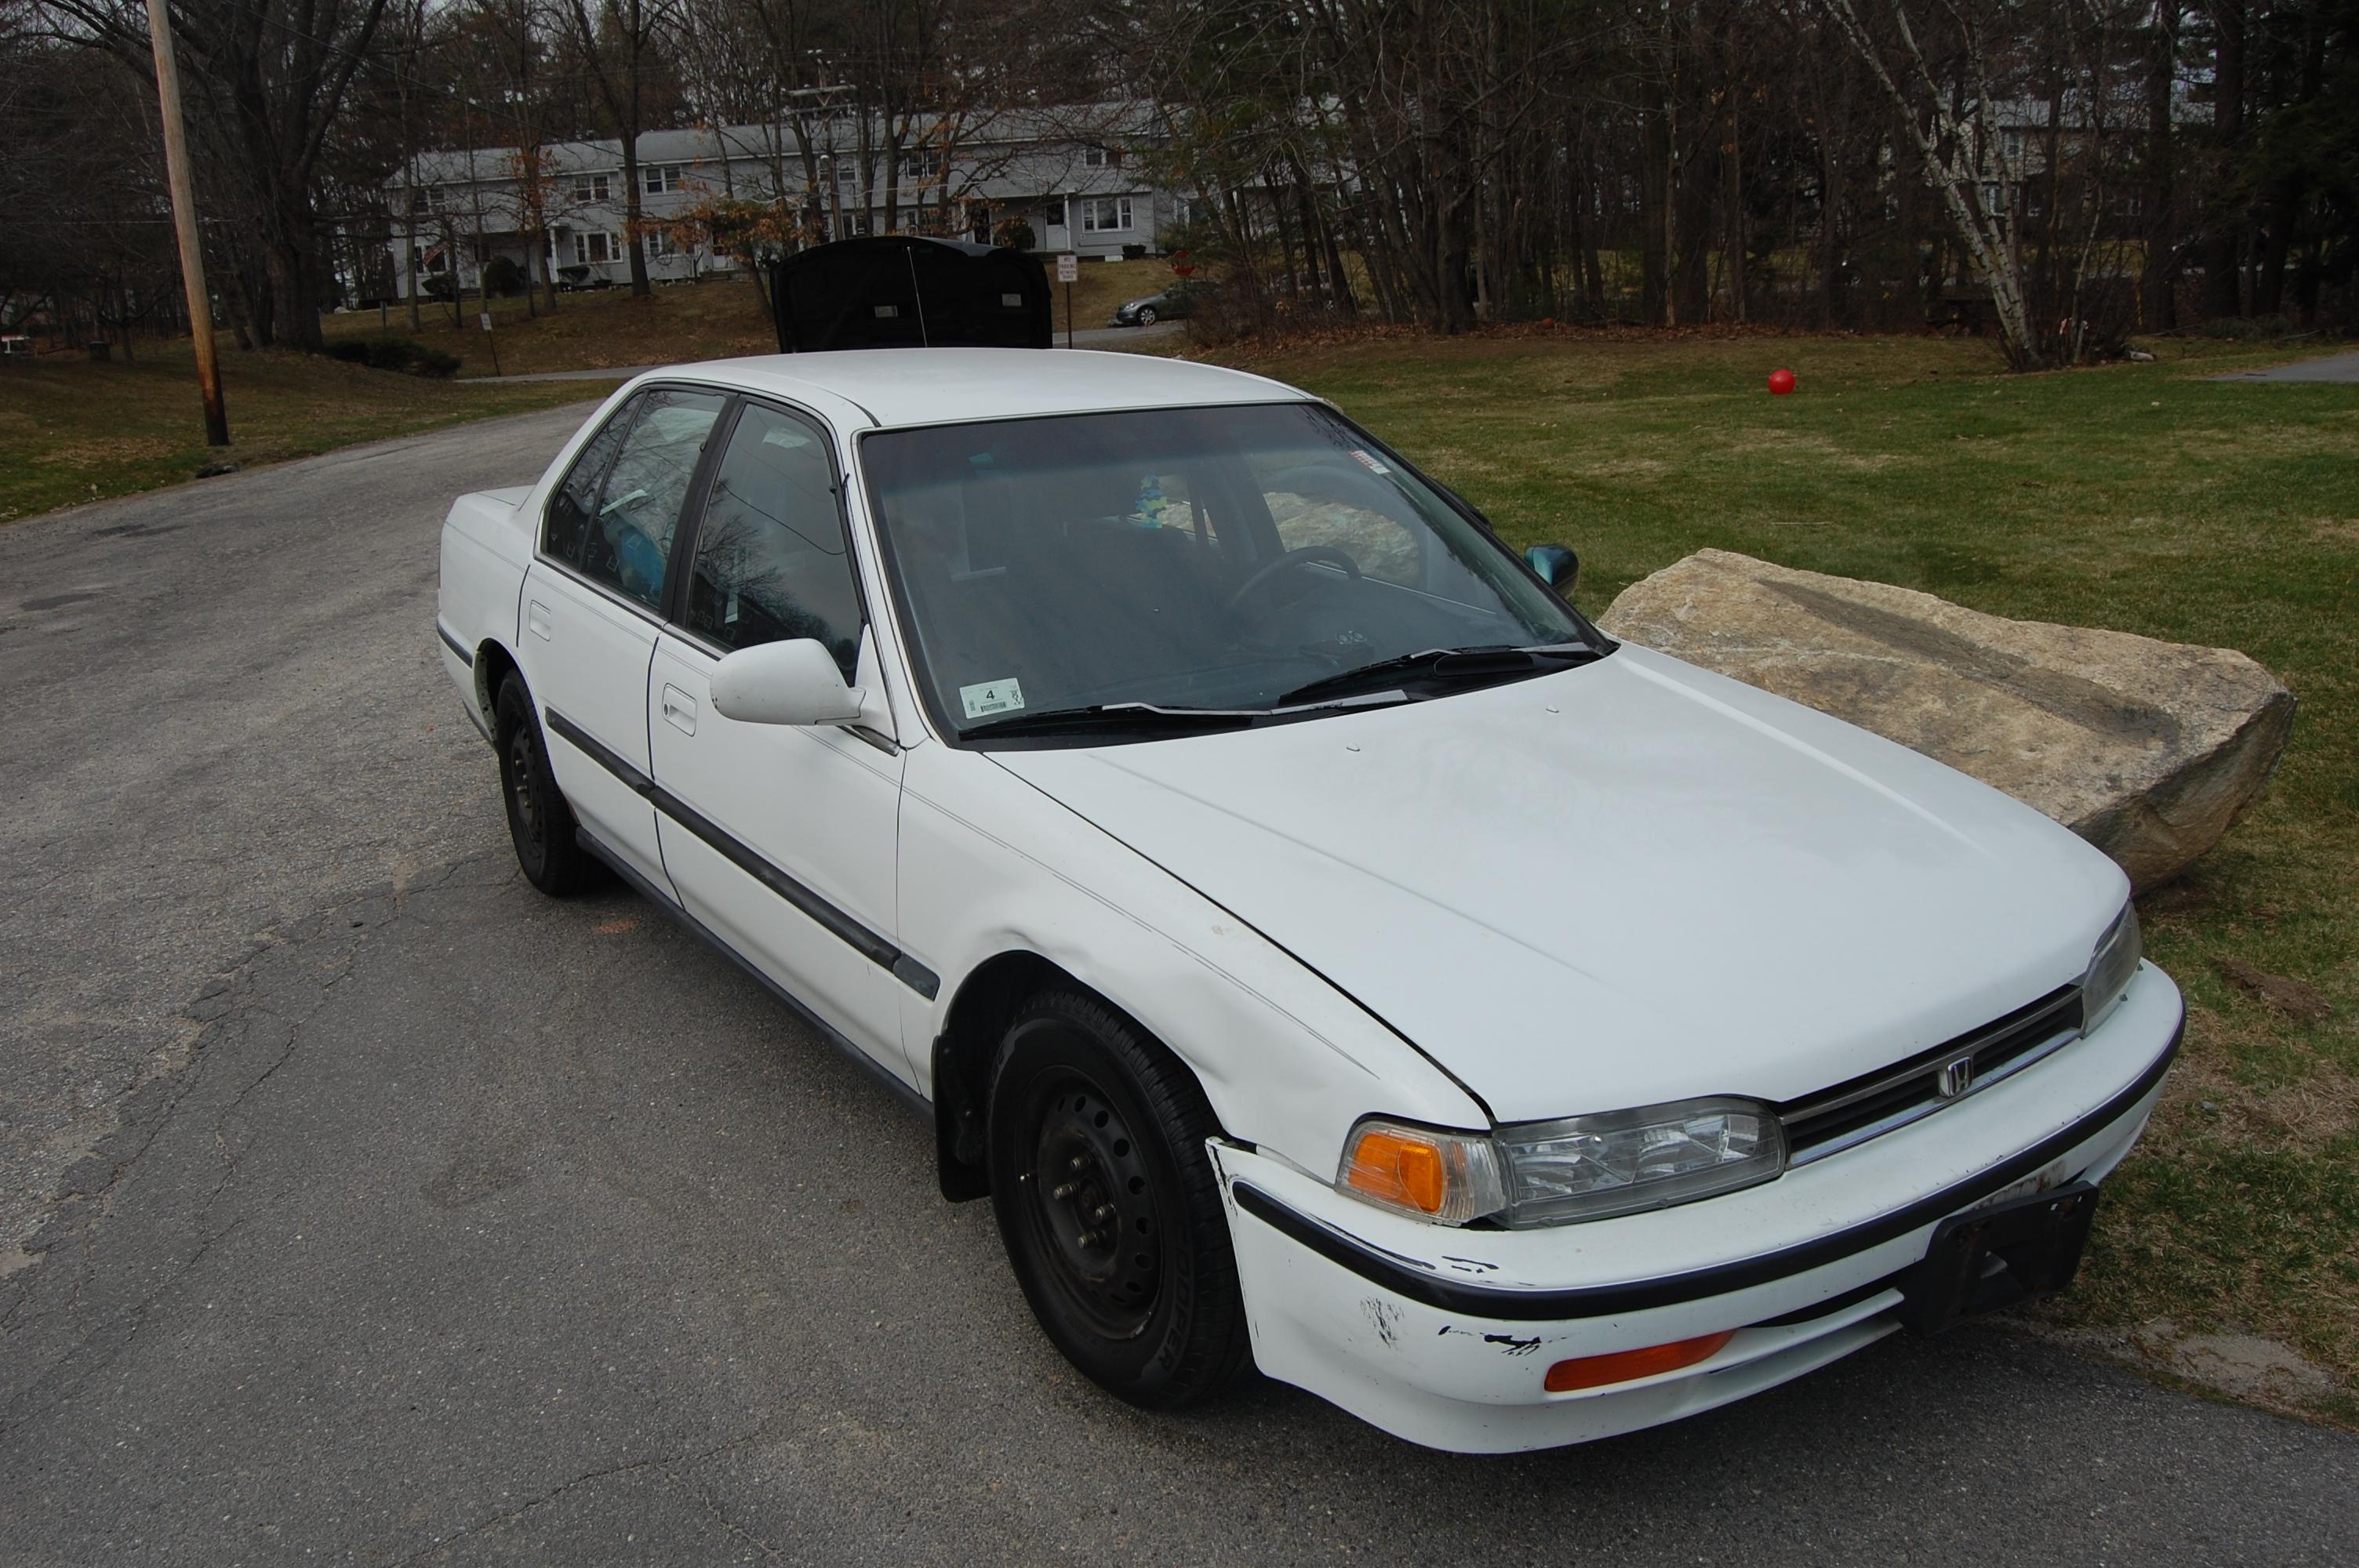 Original on 1995 Honda Accord Lx Sedan